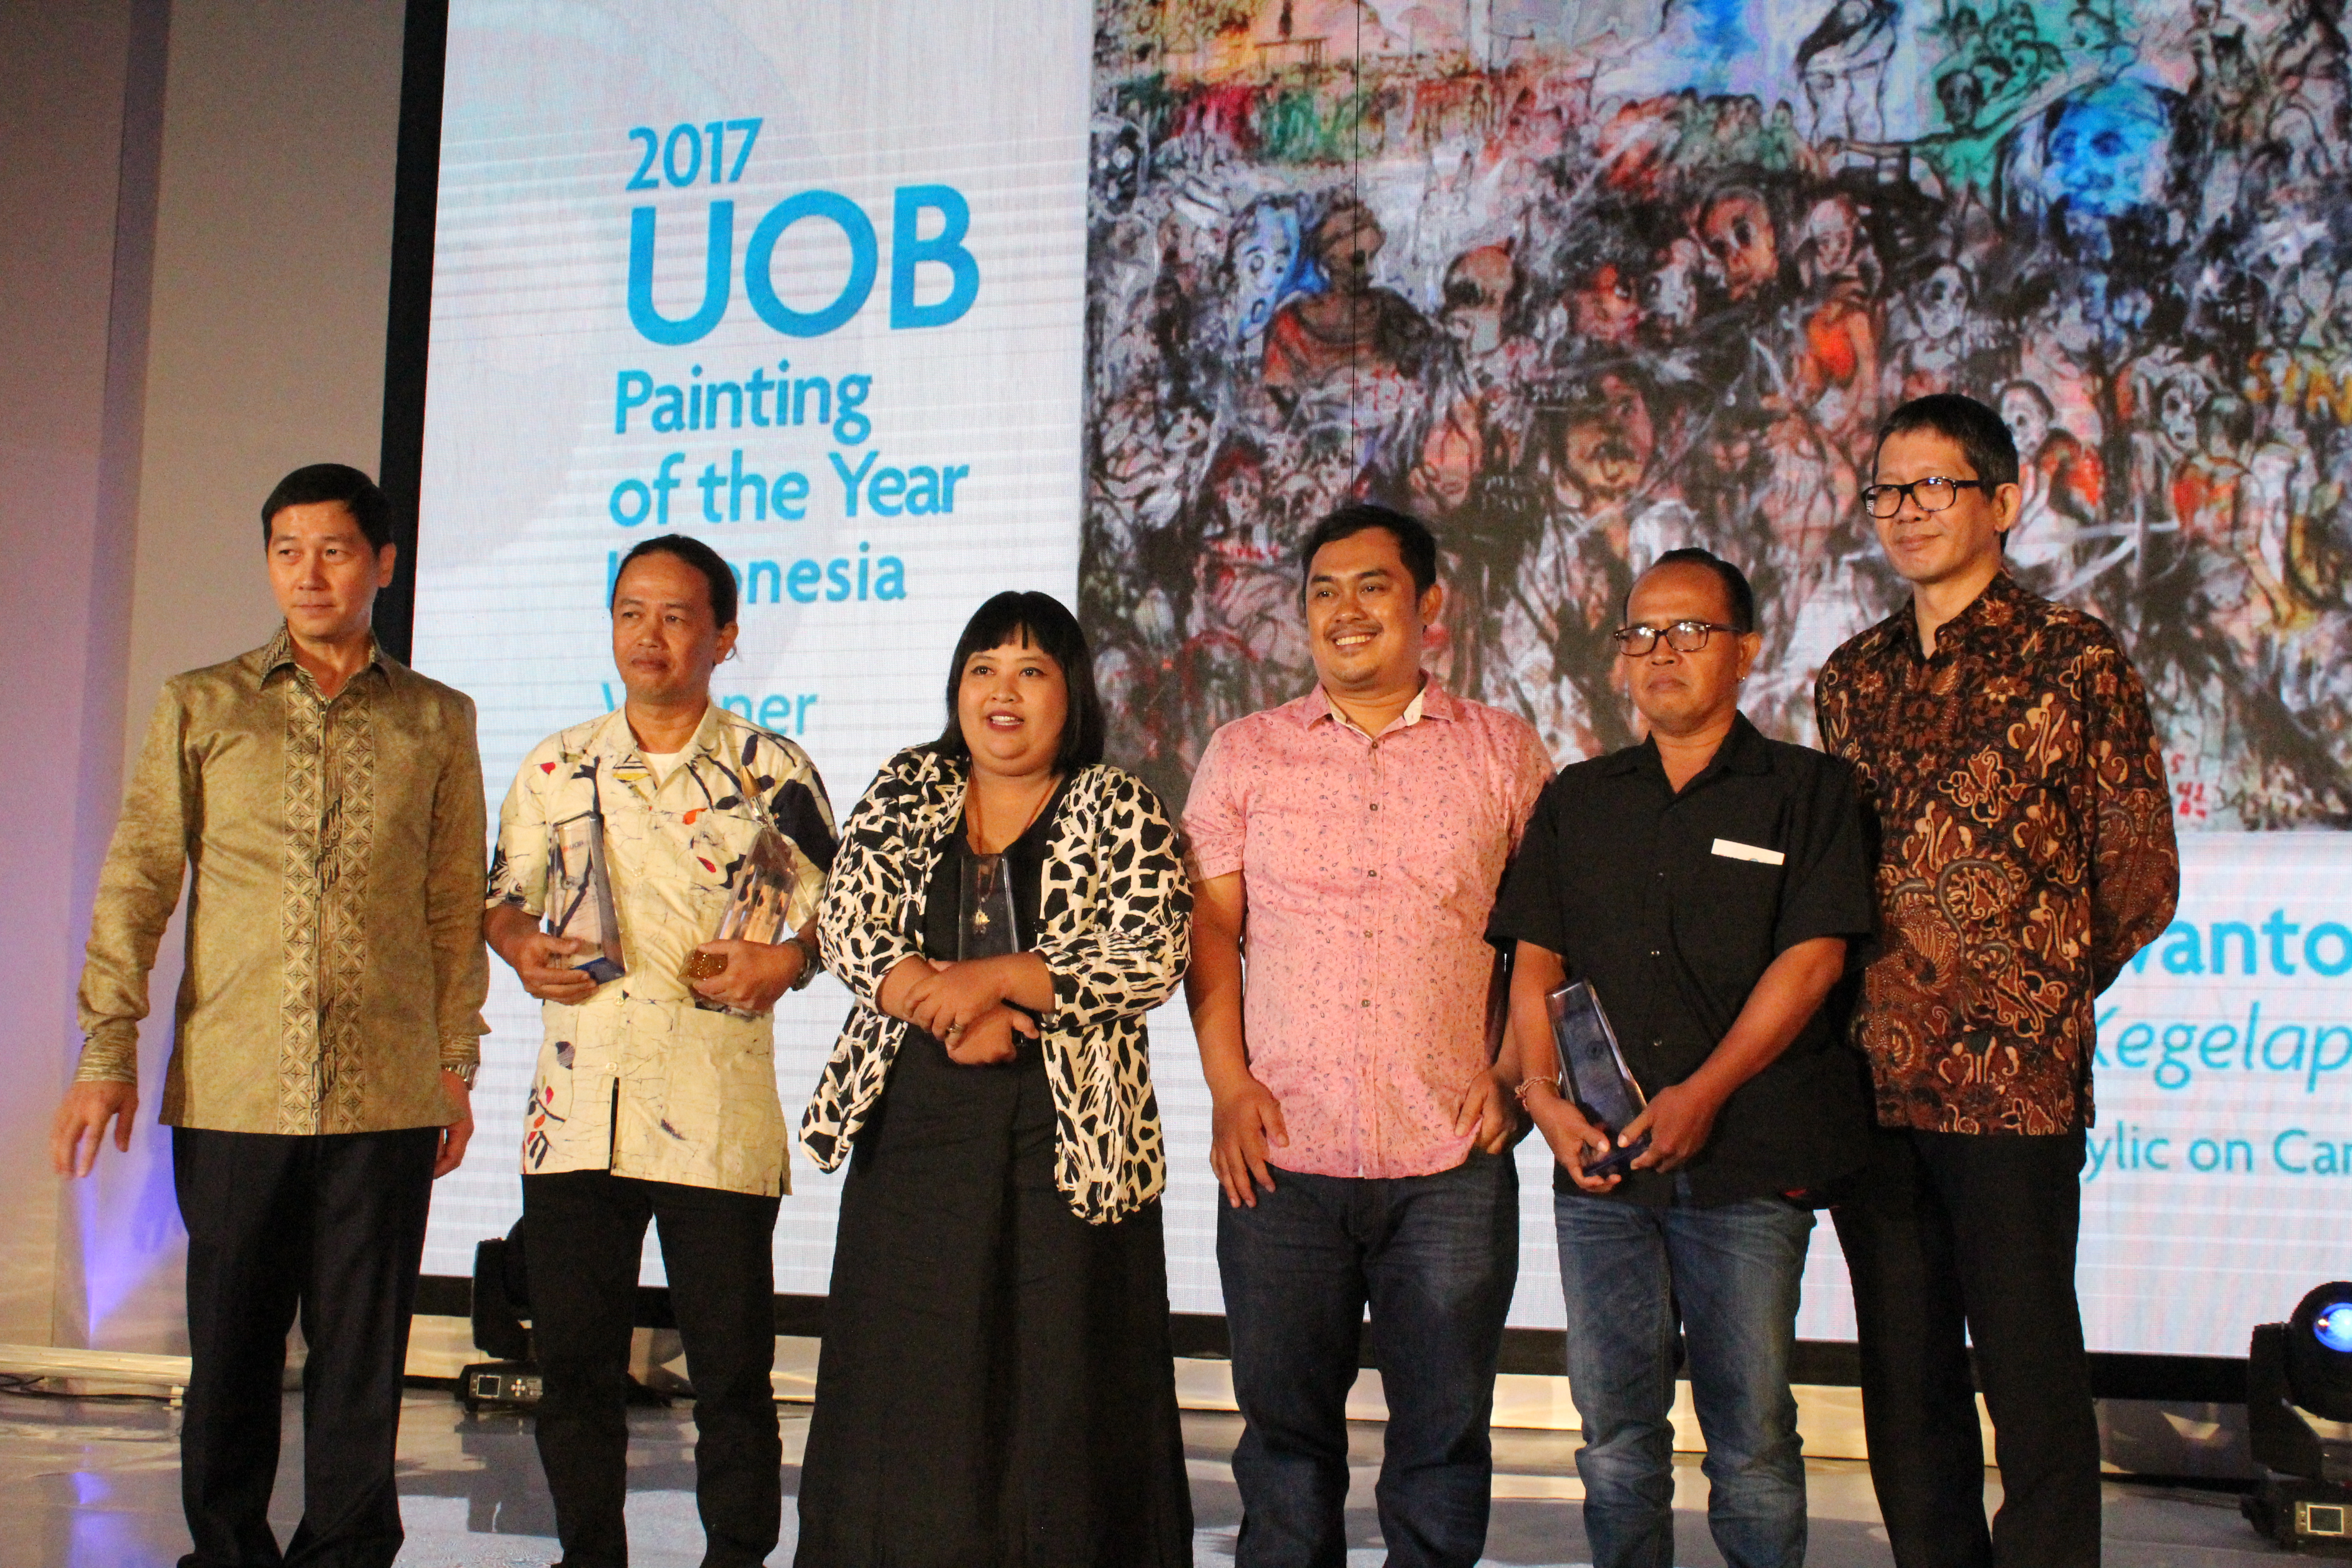 Citra Sasmita, third from the left, at the UOB Painting of the Year Award Ceremony